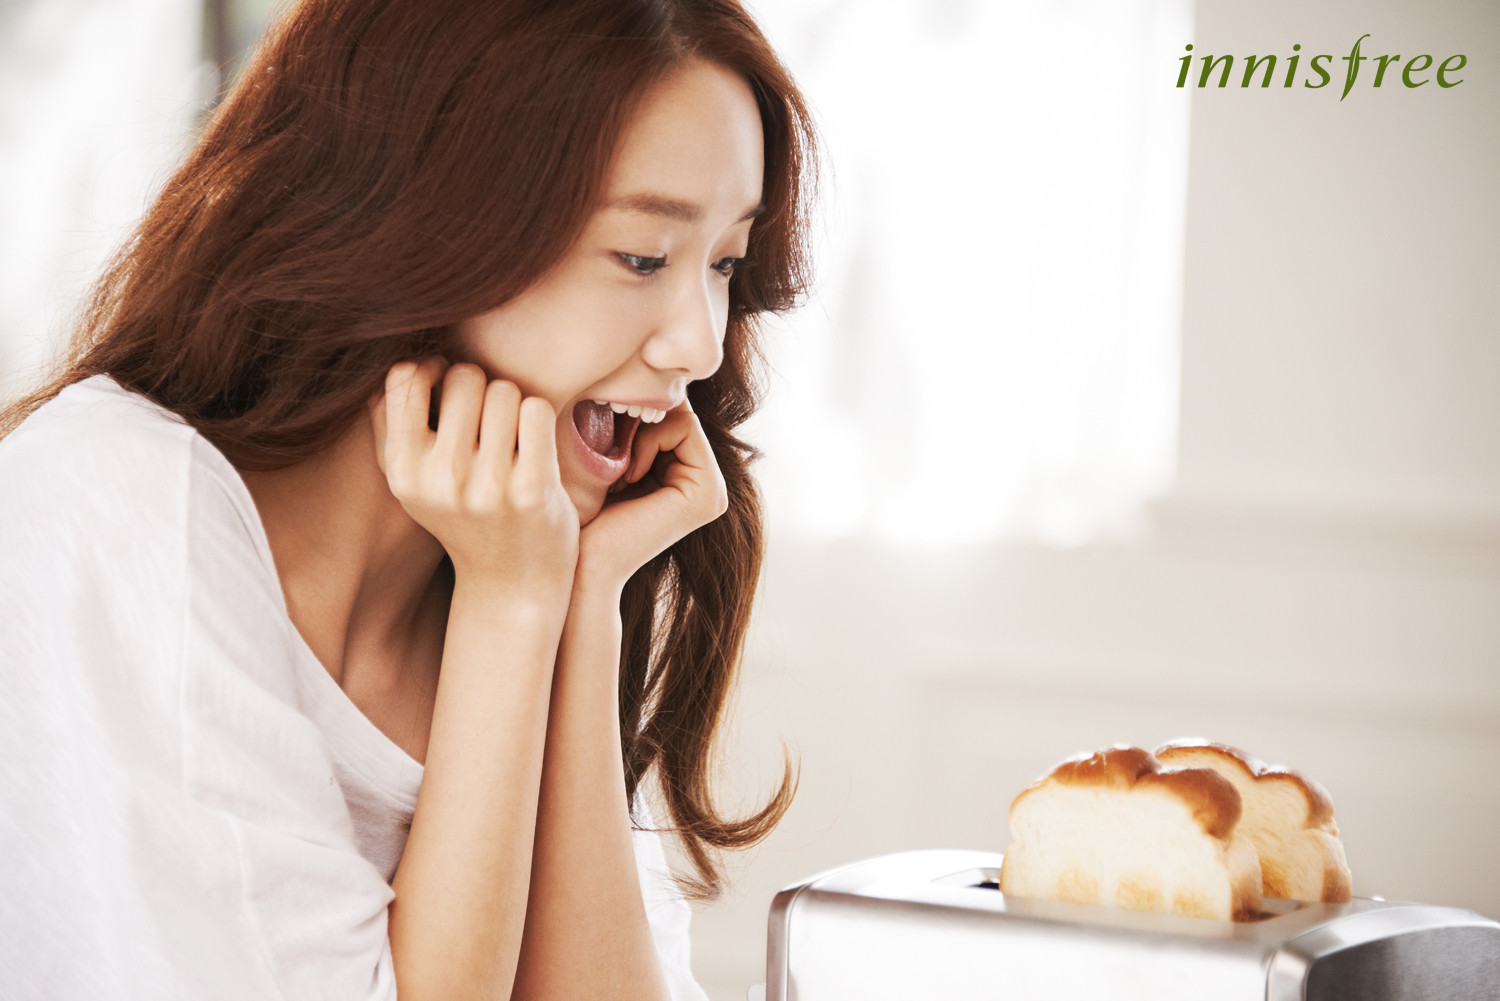 yoona bread is great